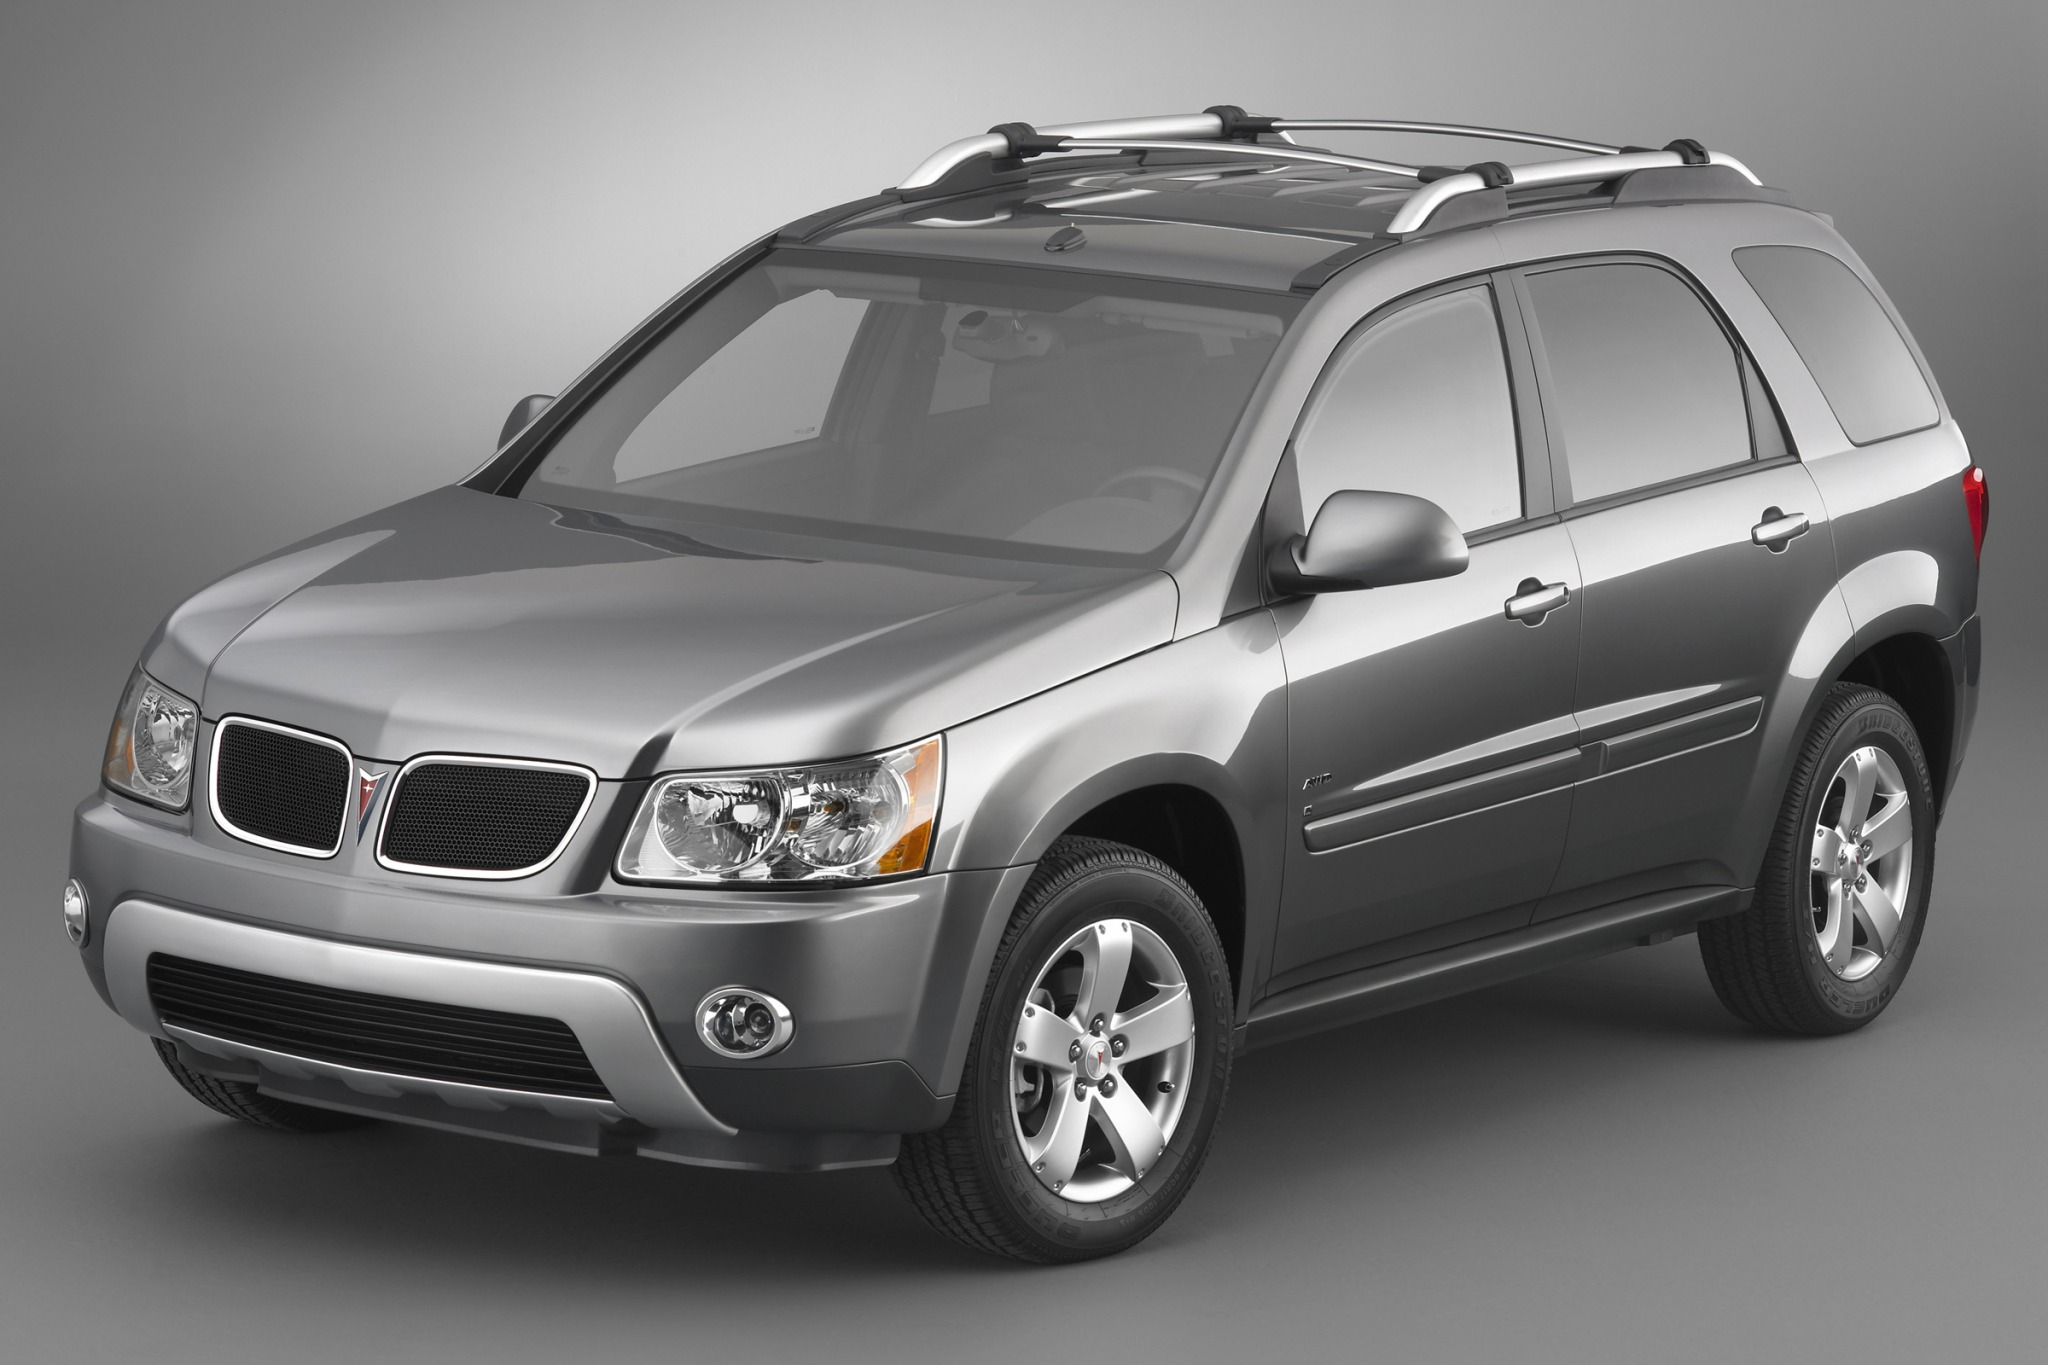 2007 Pontiac Torrent #16